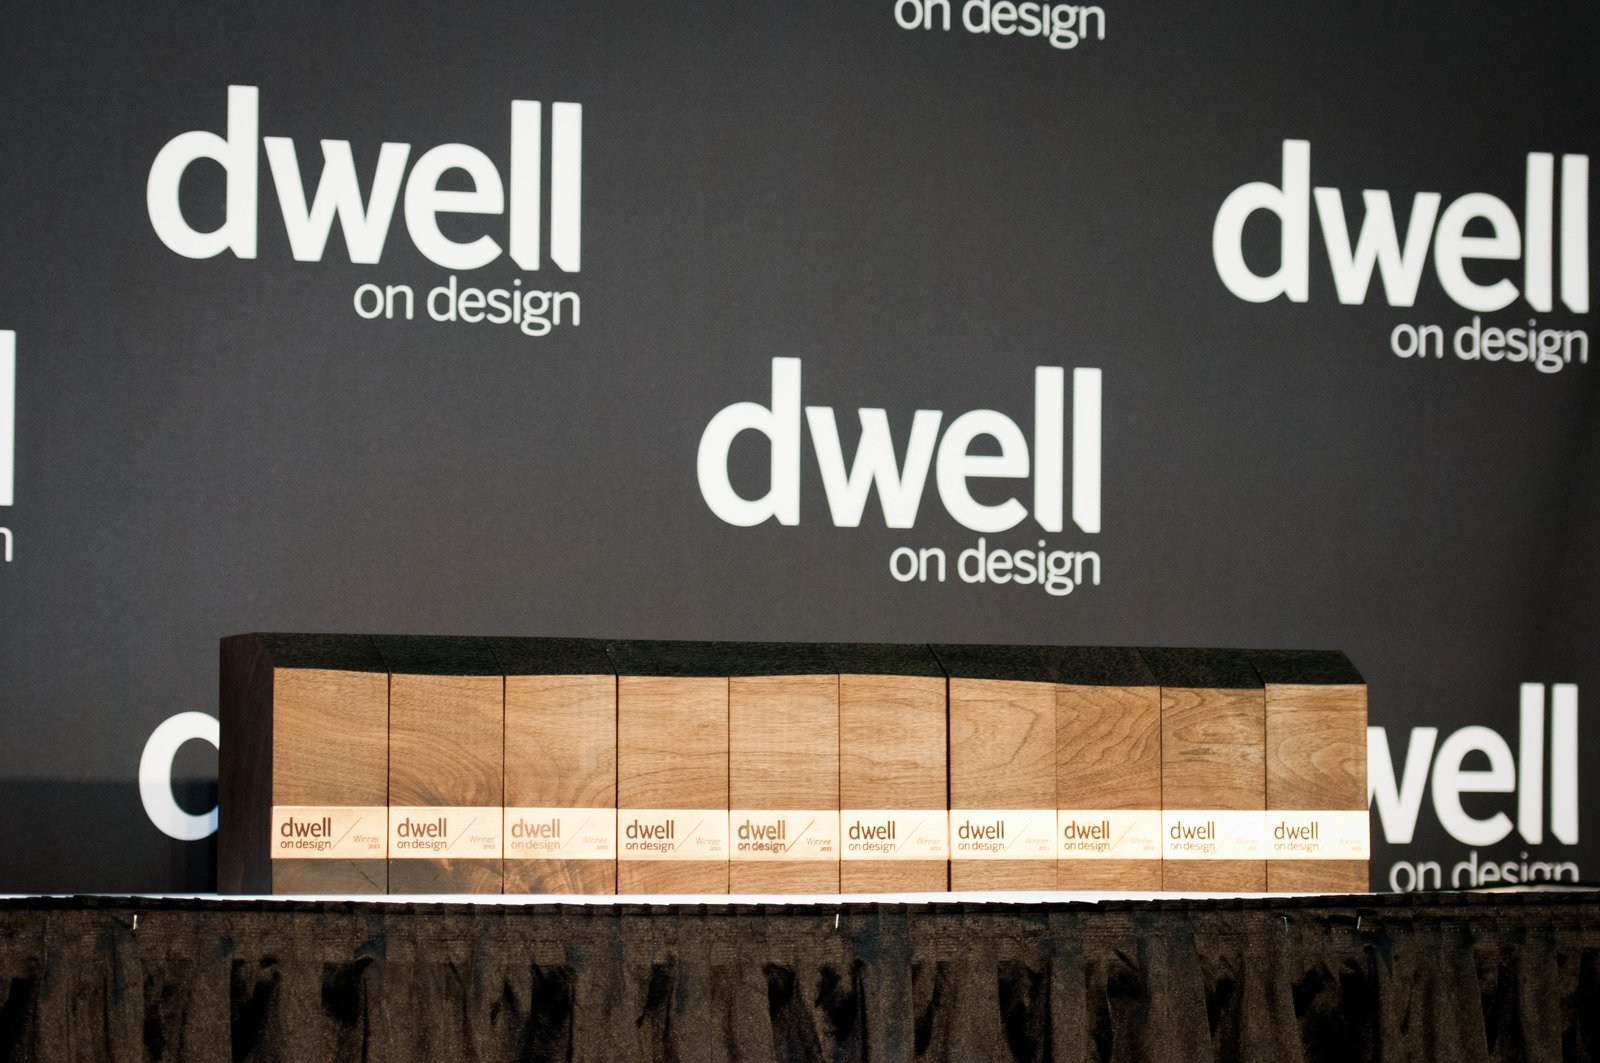 The awards were a custom collaborative design by Dwell creative director Alejandro Chavetta and the San Francisco design firm Ohio. Photo by: Mimi Teller Rosicky  Dwell on Design Awards 2013 by Erika Heet